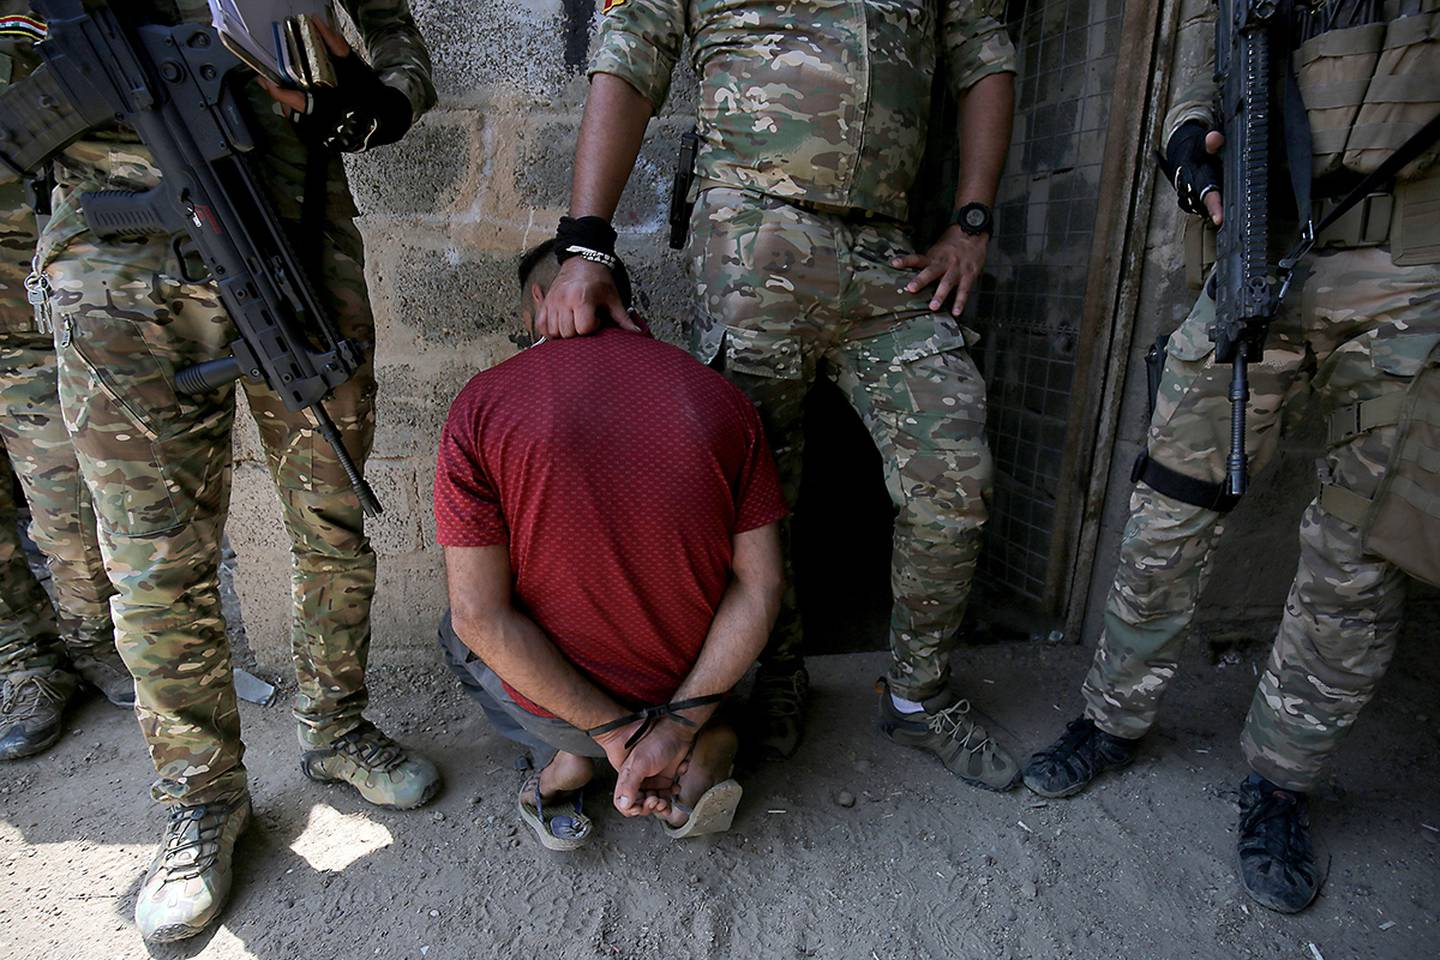 Iraqs rapid response forces detain a man as they storm a house in the Tarmiyah district, north of Baghdad, searching for wanted Islamic State group suspects on July 21, 2019.